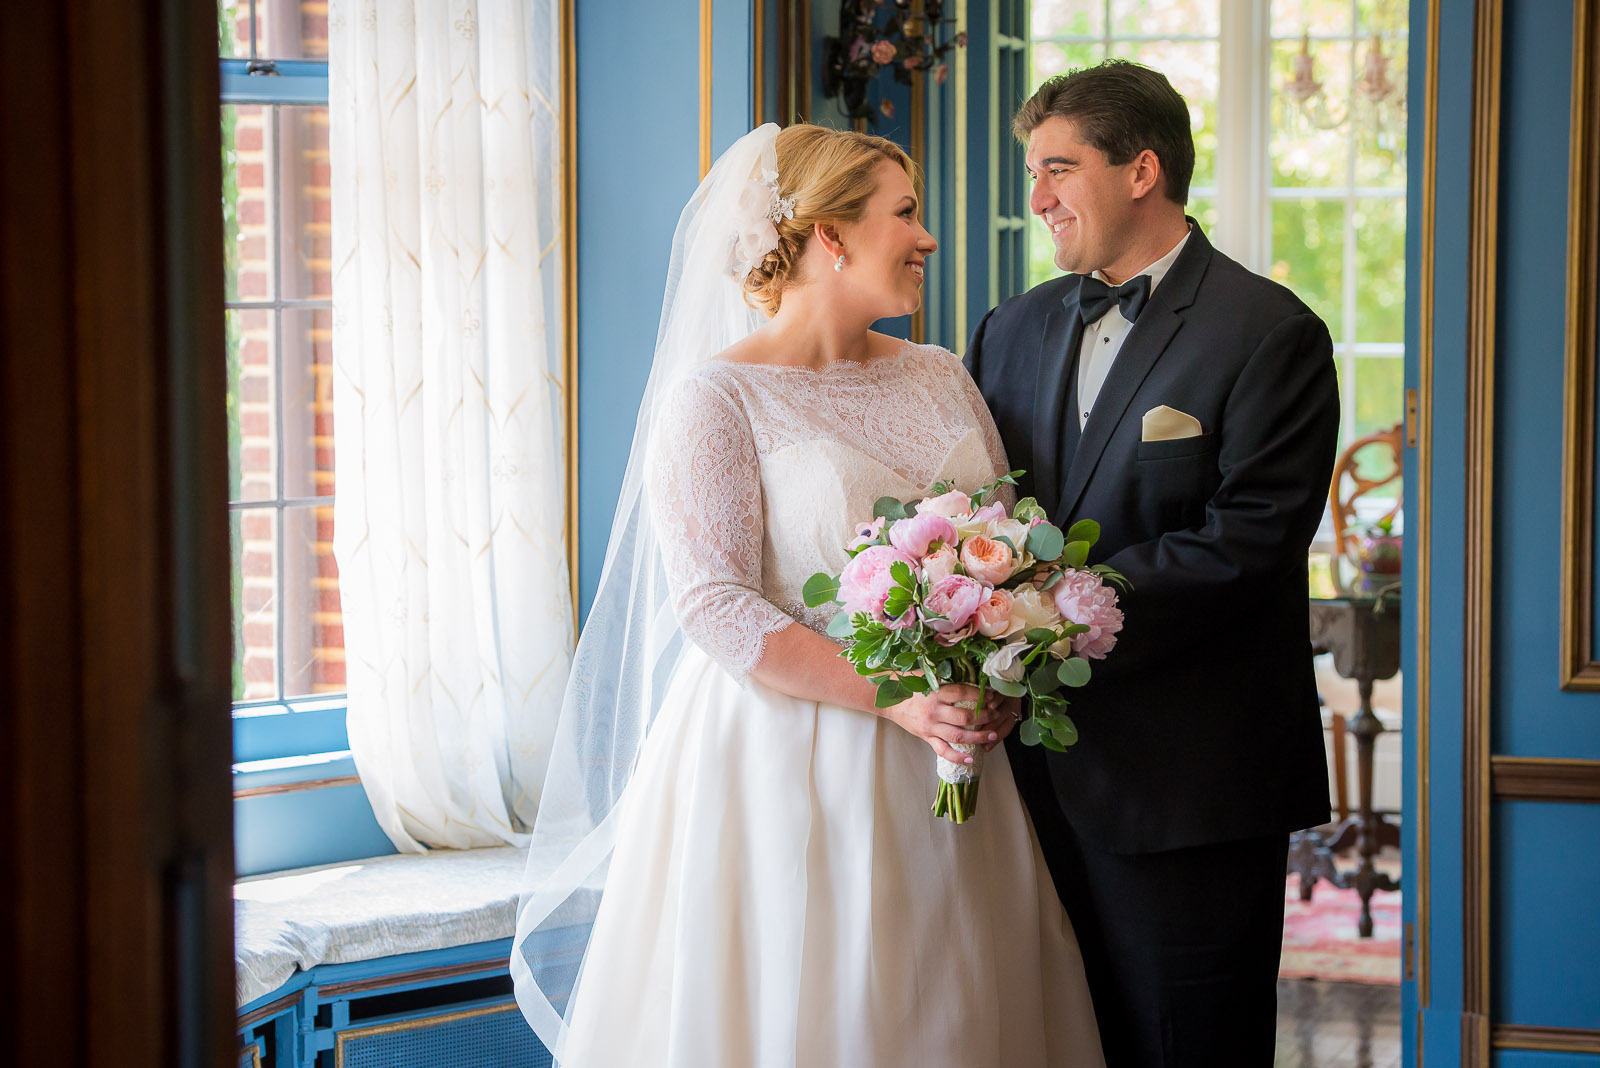 eric_and_christy_photographers_blog_wedding_emilypeter-8